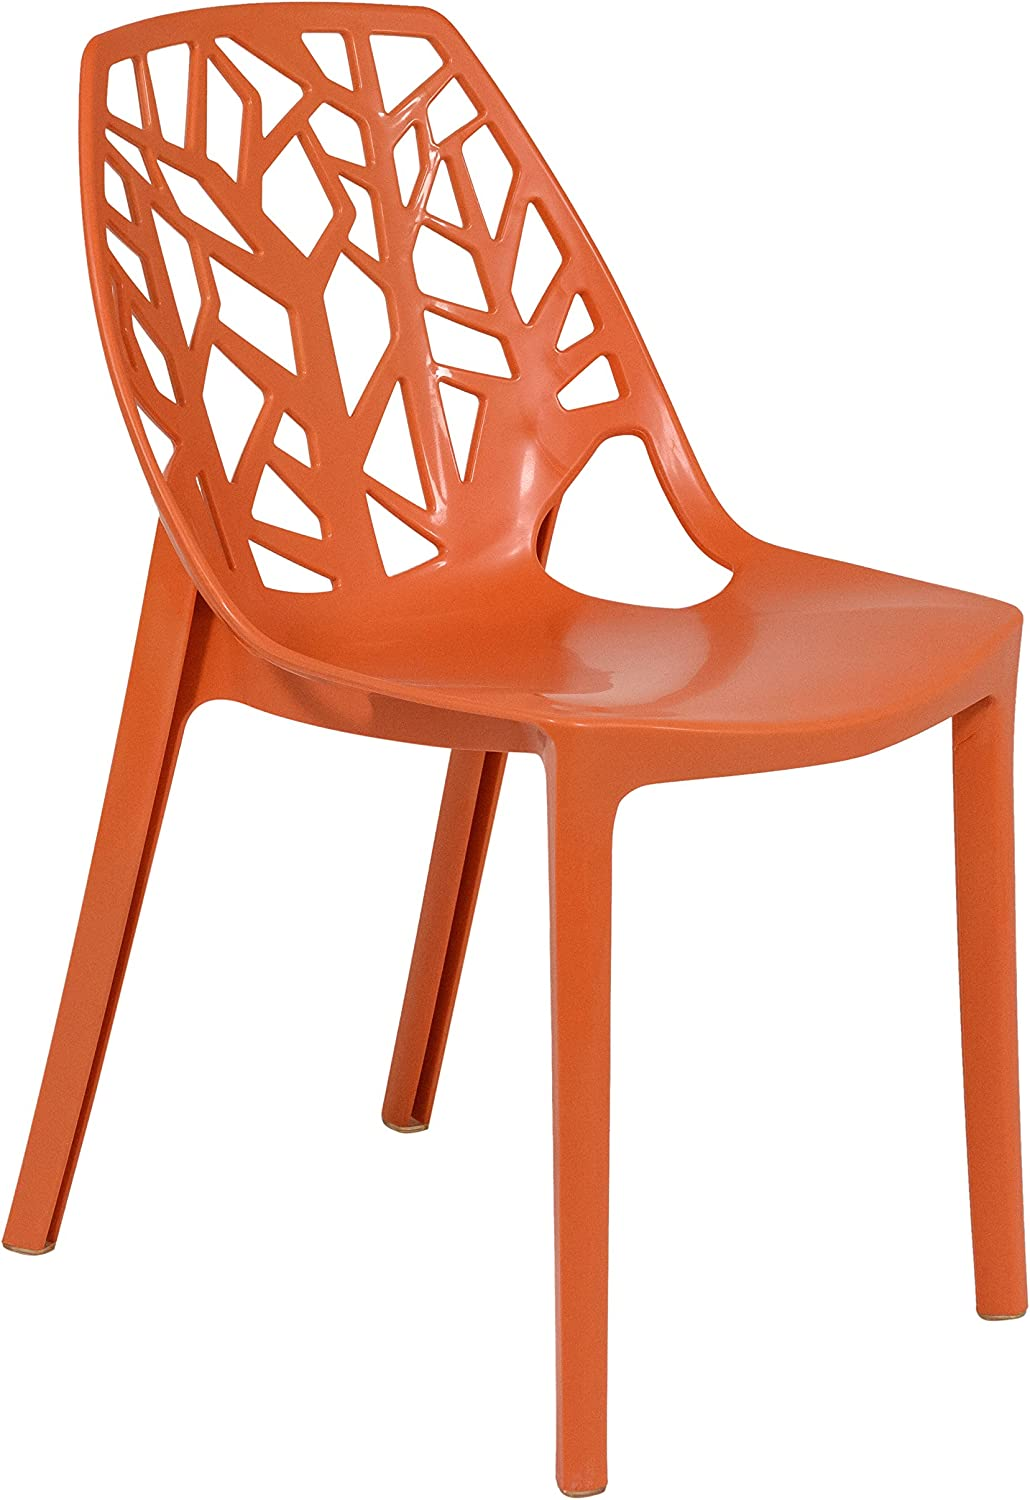 LeisureMod Caswell Cut-Out Tree Design Modern Dining Chairs (Solid orange)